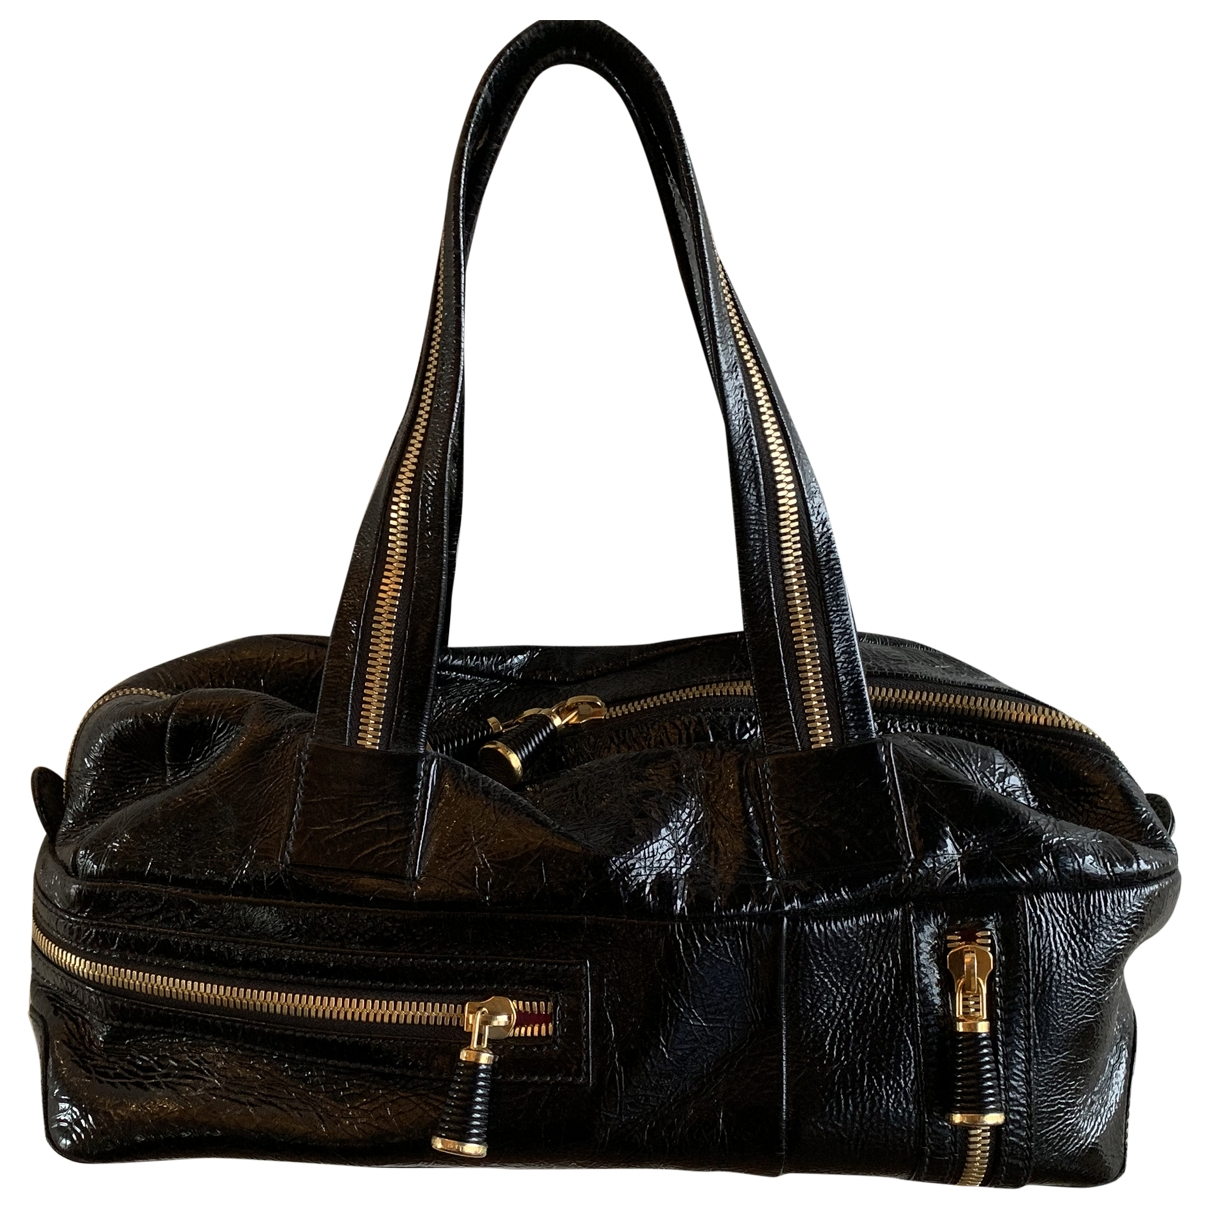 Sergio Rossi \N Black Leather handbag for Women \N